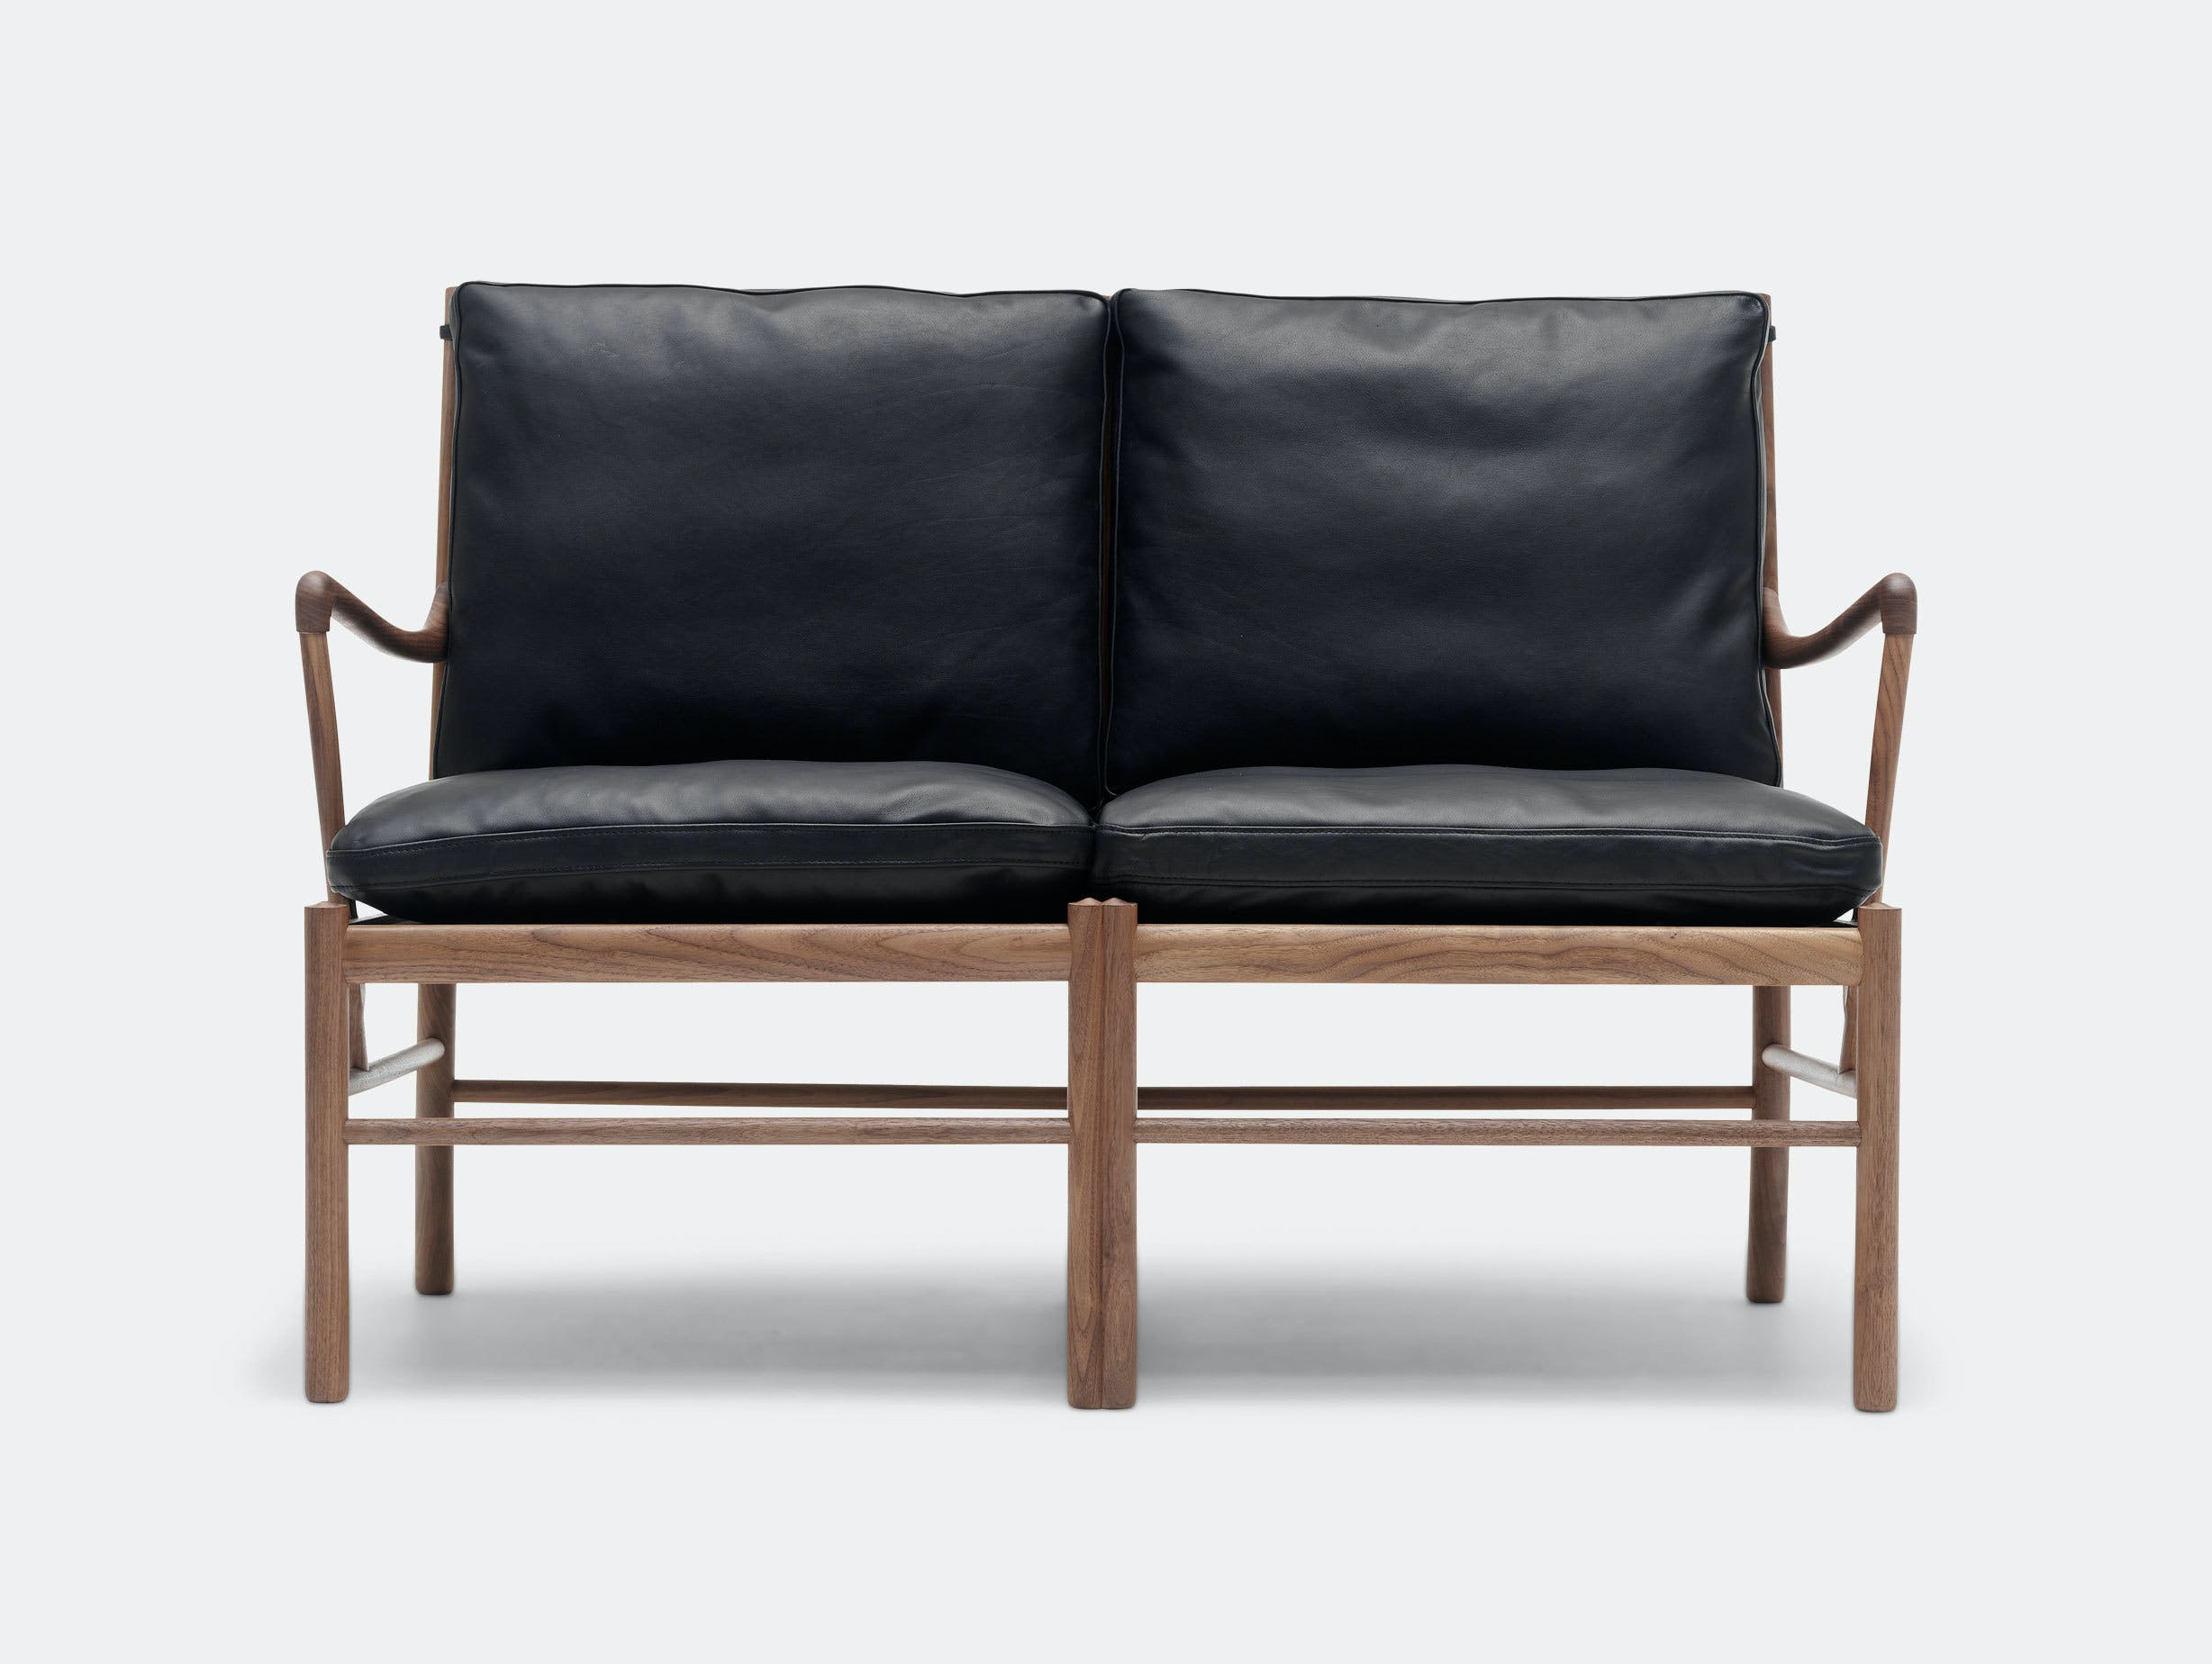 Carl Hansen Ow149 2 Colonial Sofa Walnut Black Leather Front Ole Wanscher